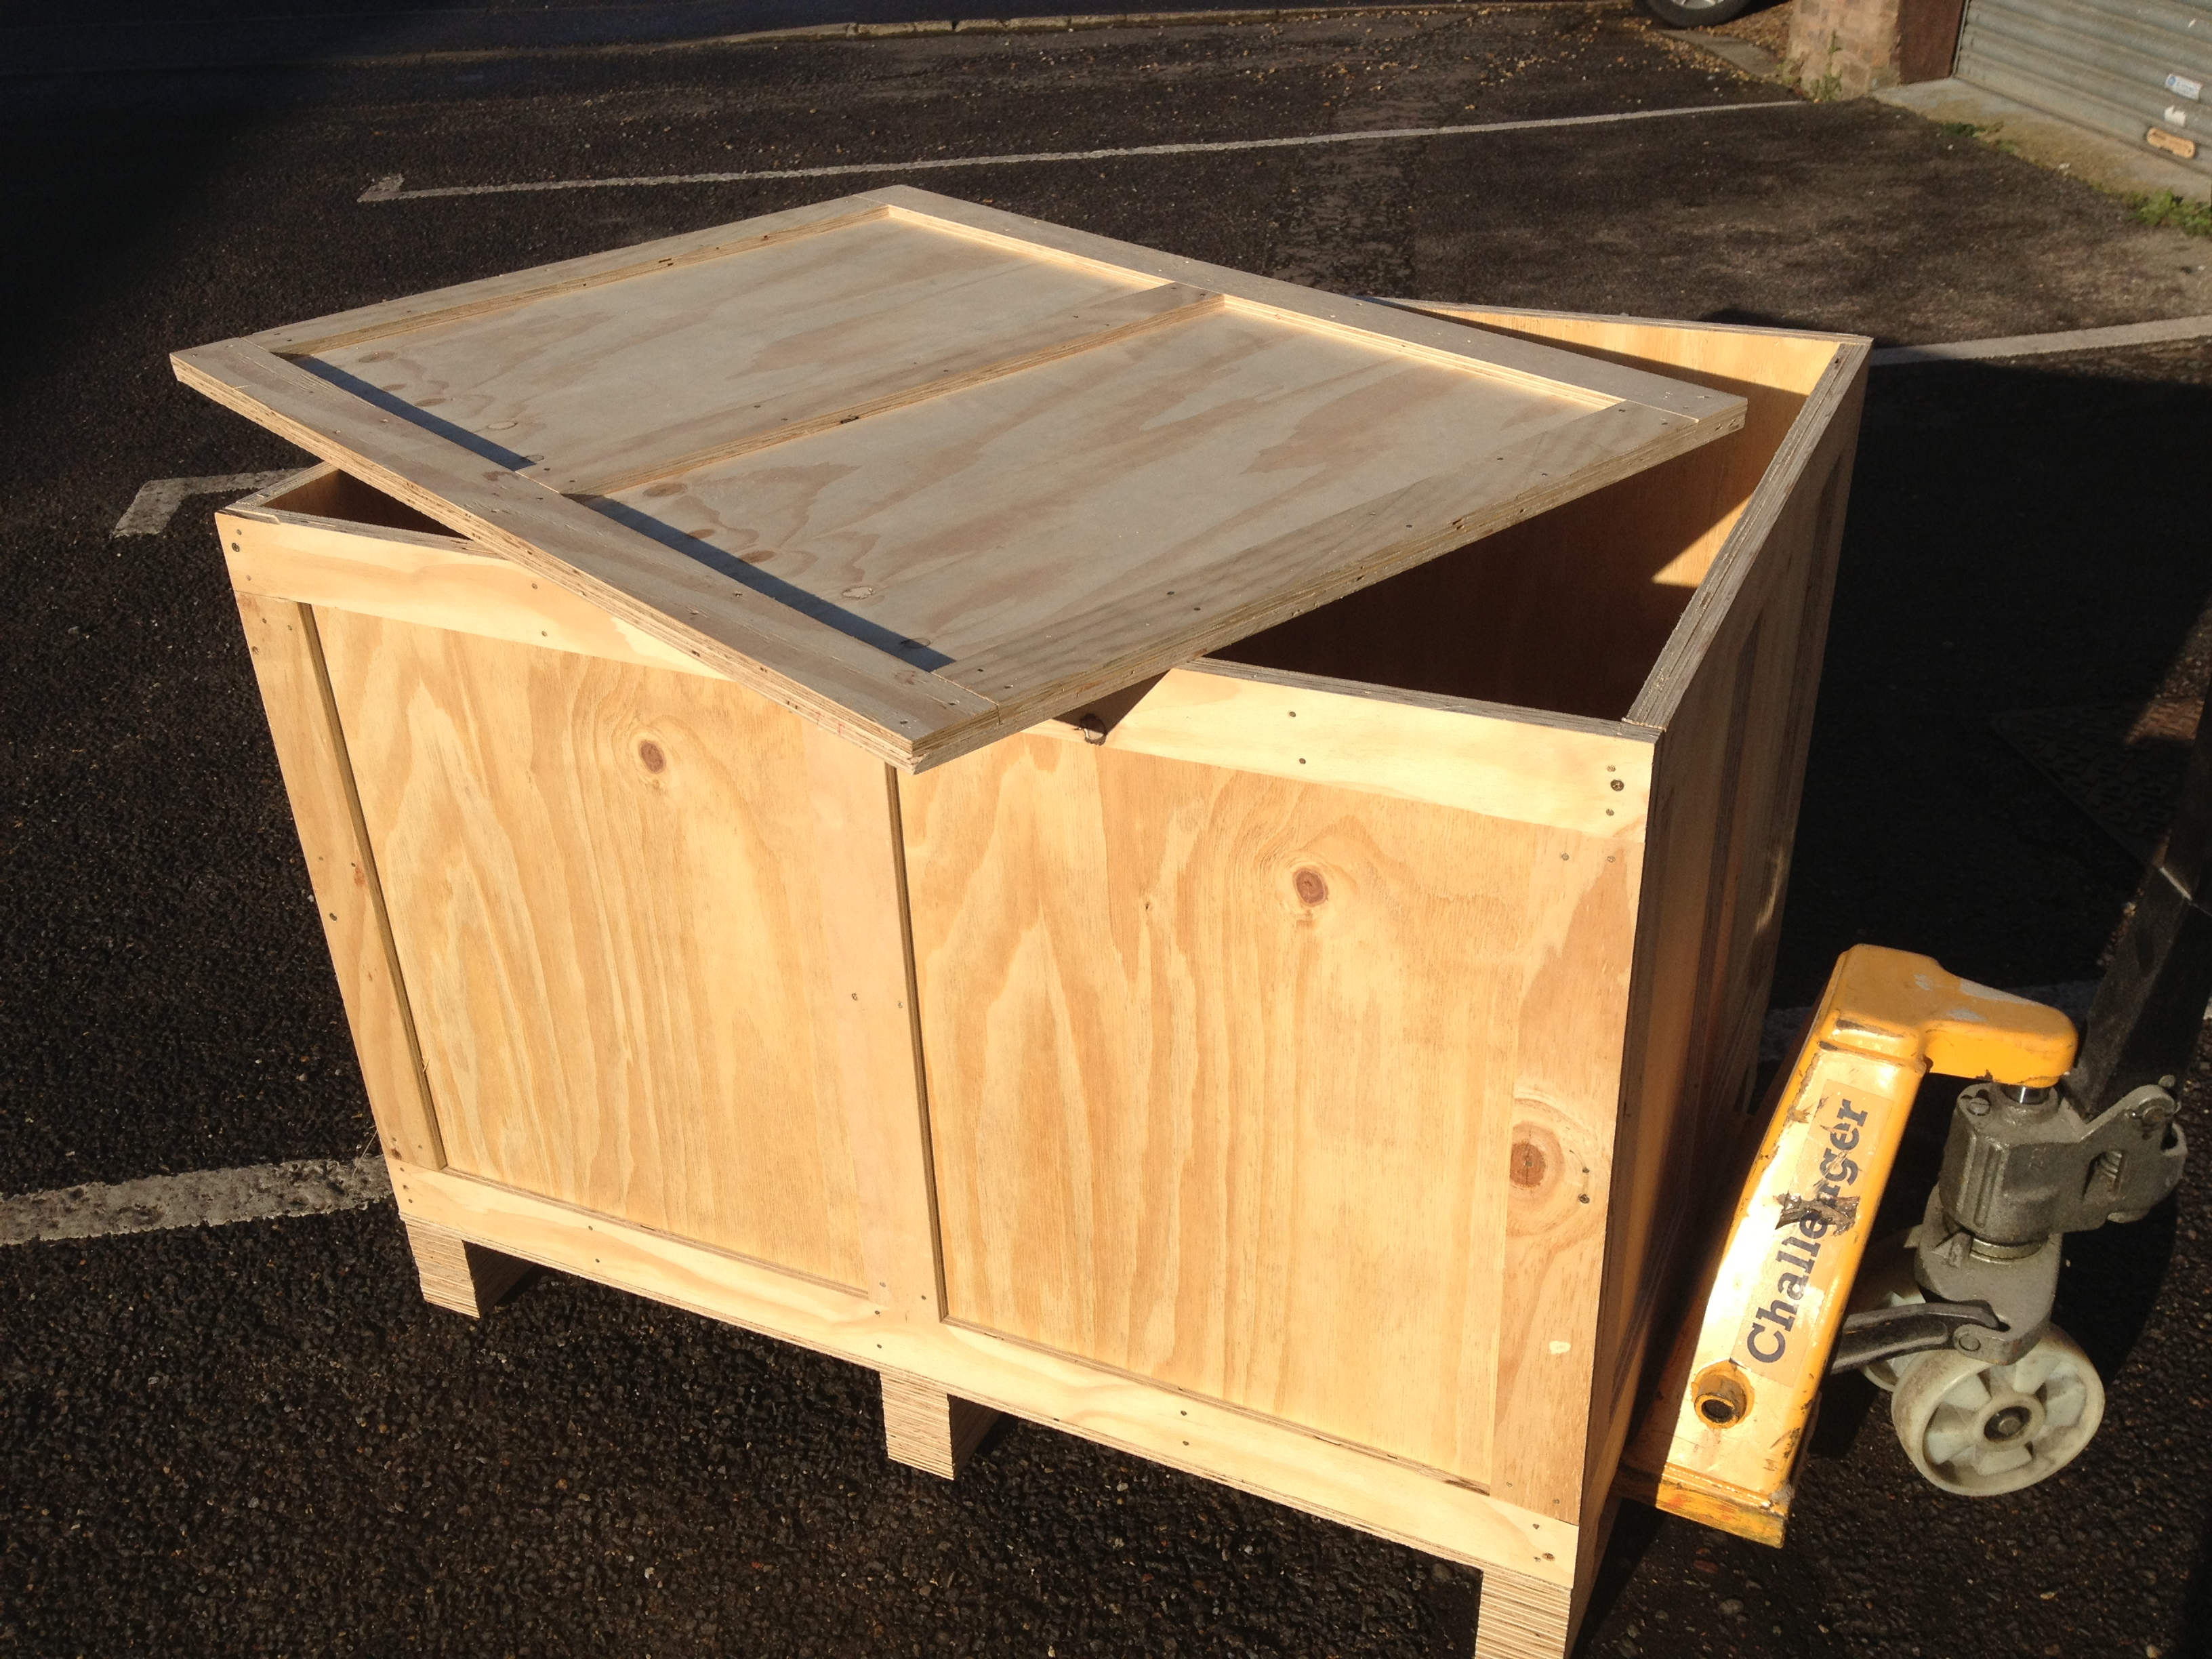 wooden packing crate table